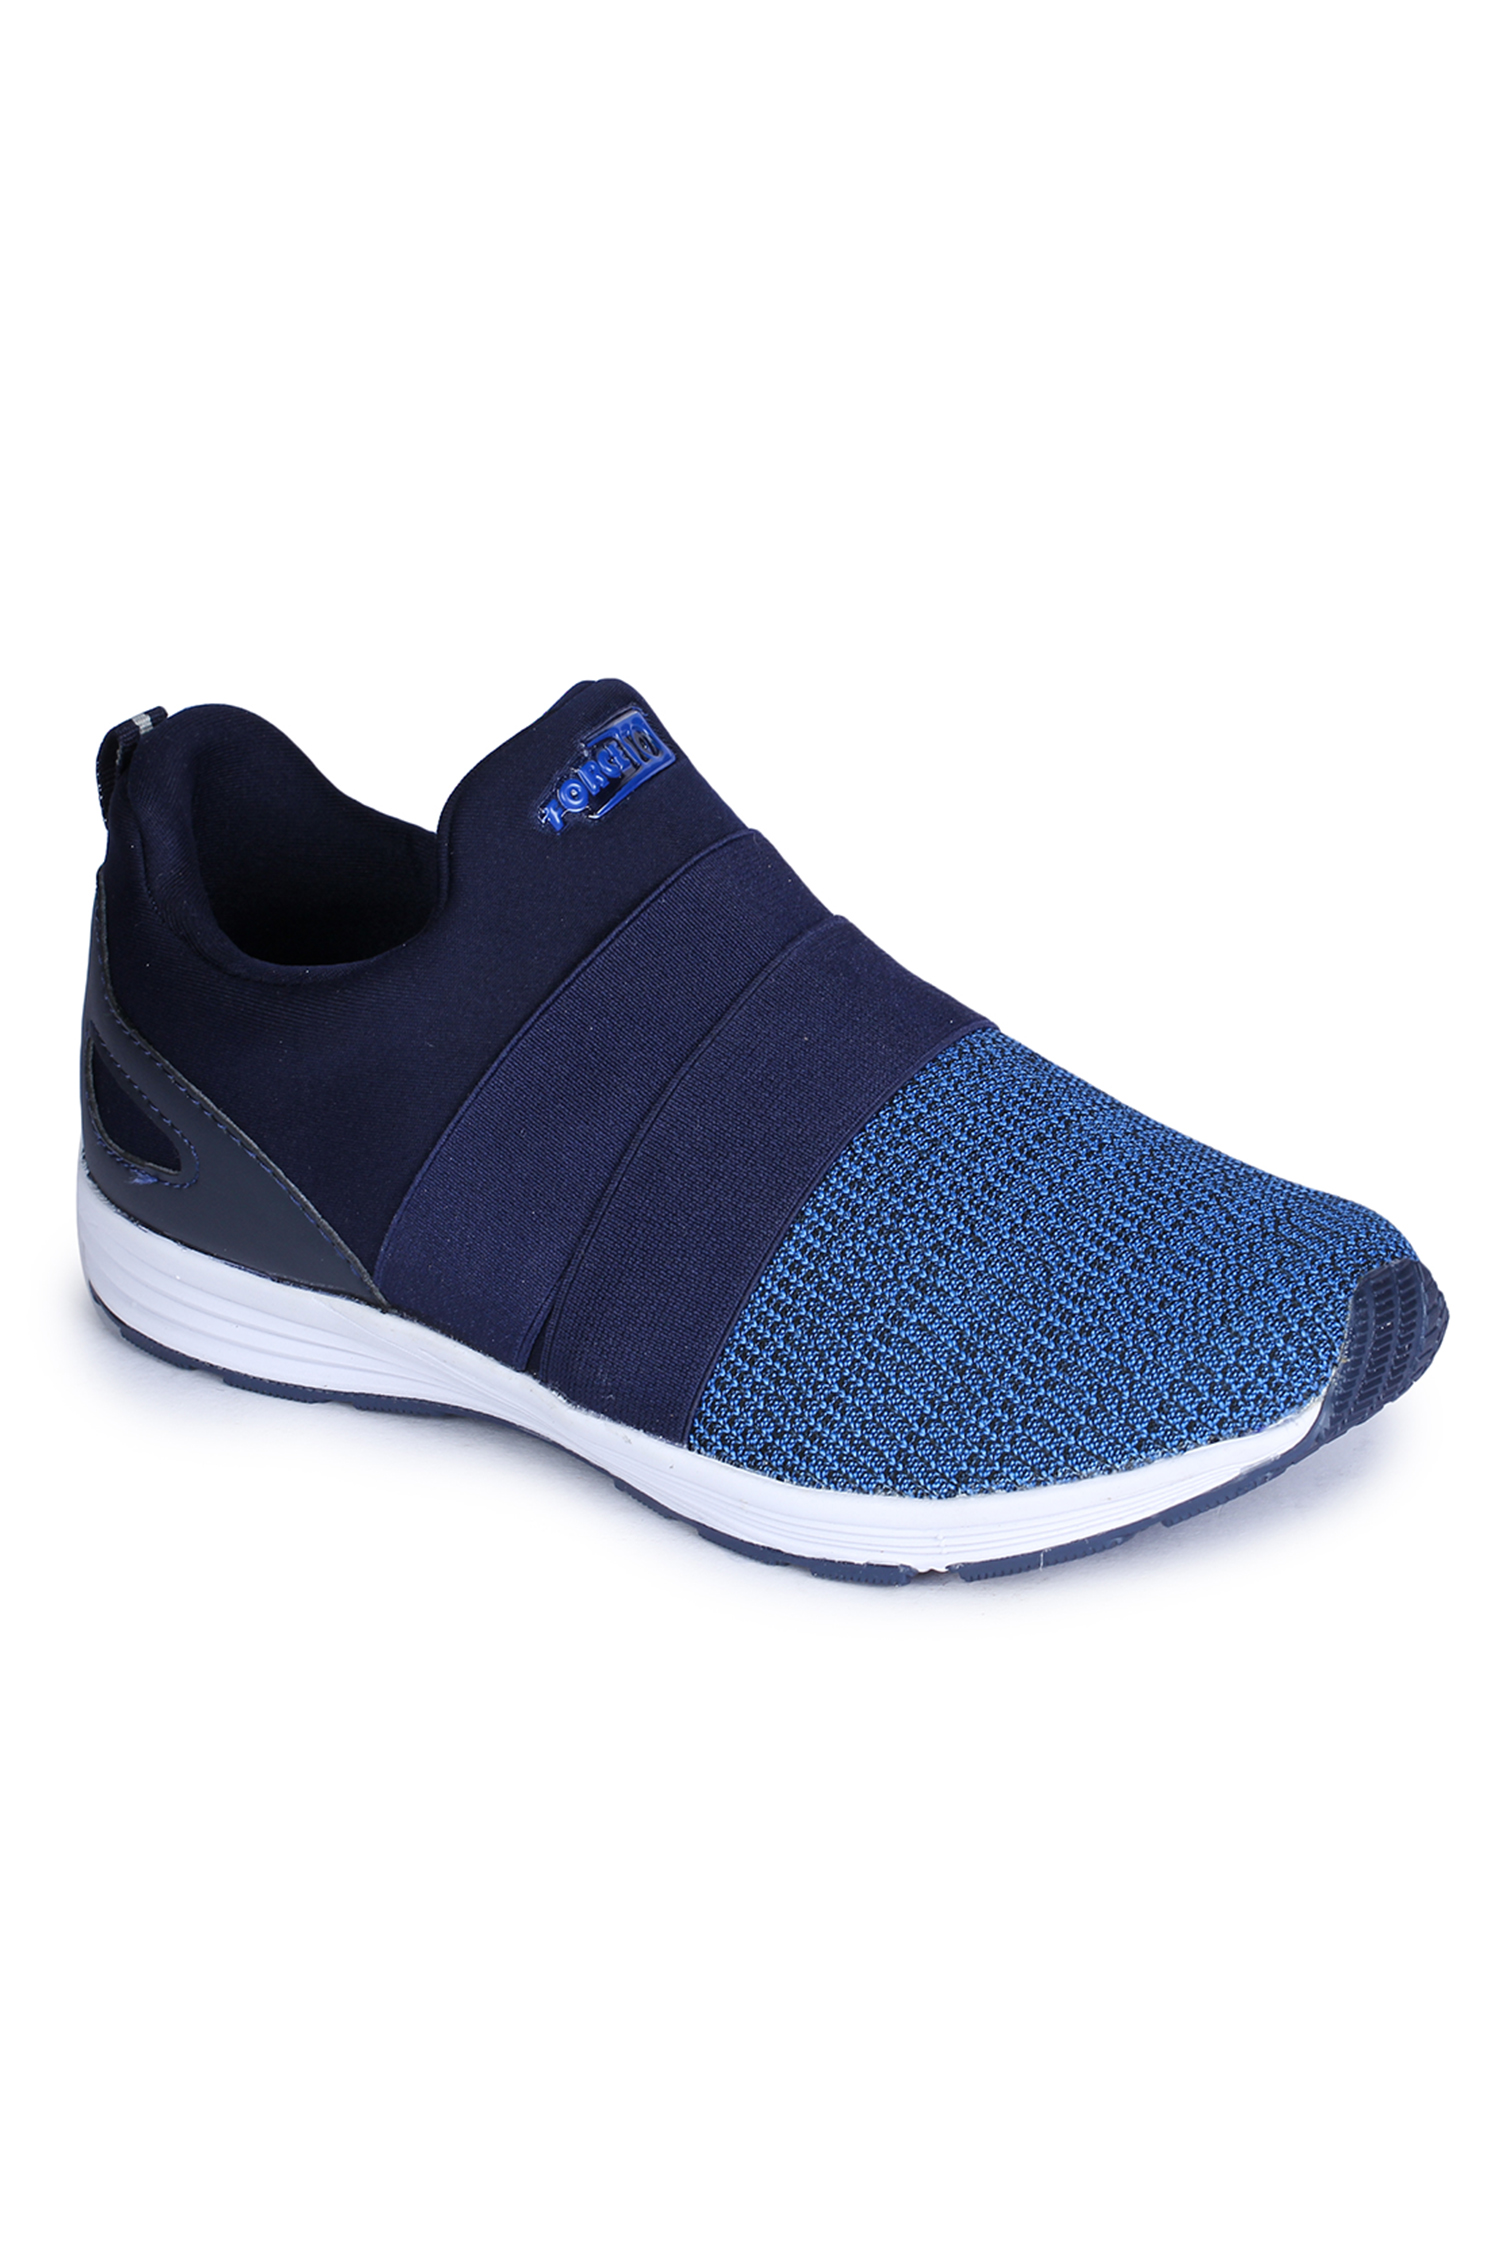 Liberty   Liberty Force 10 Blue Sports Wailking Shoes MARTIE-11_Blue For - Women